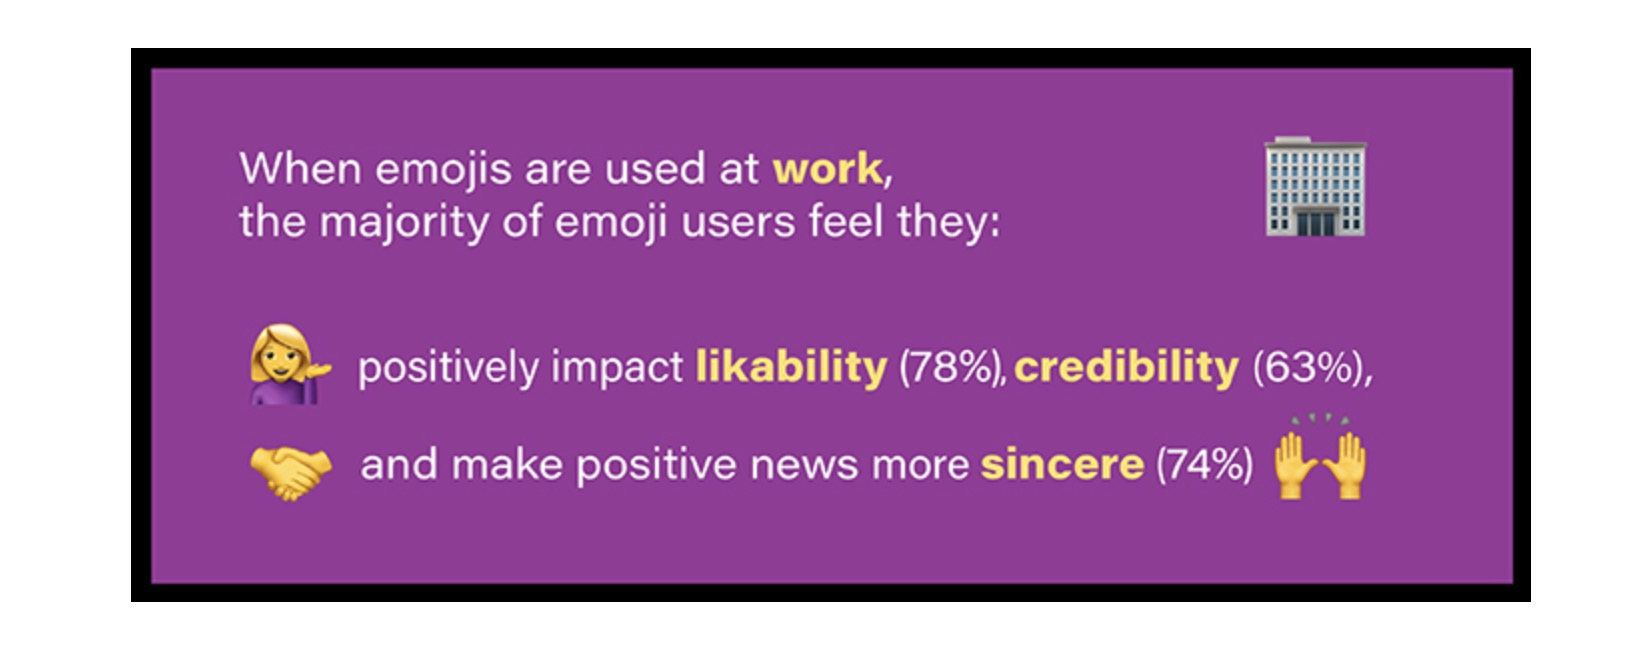 Emoji Use At Work